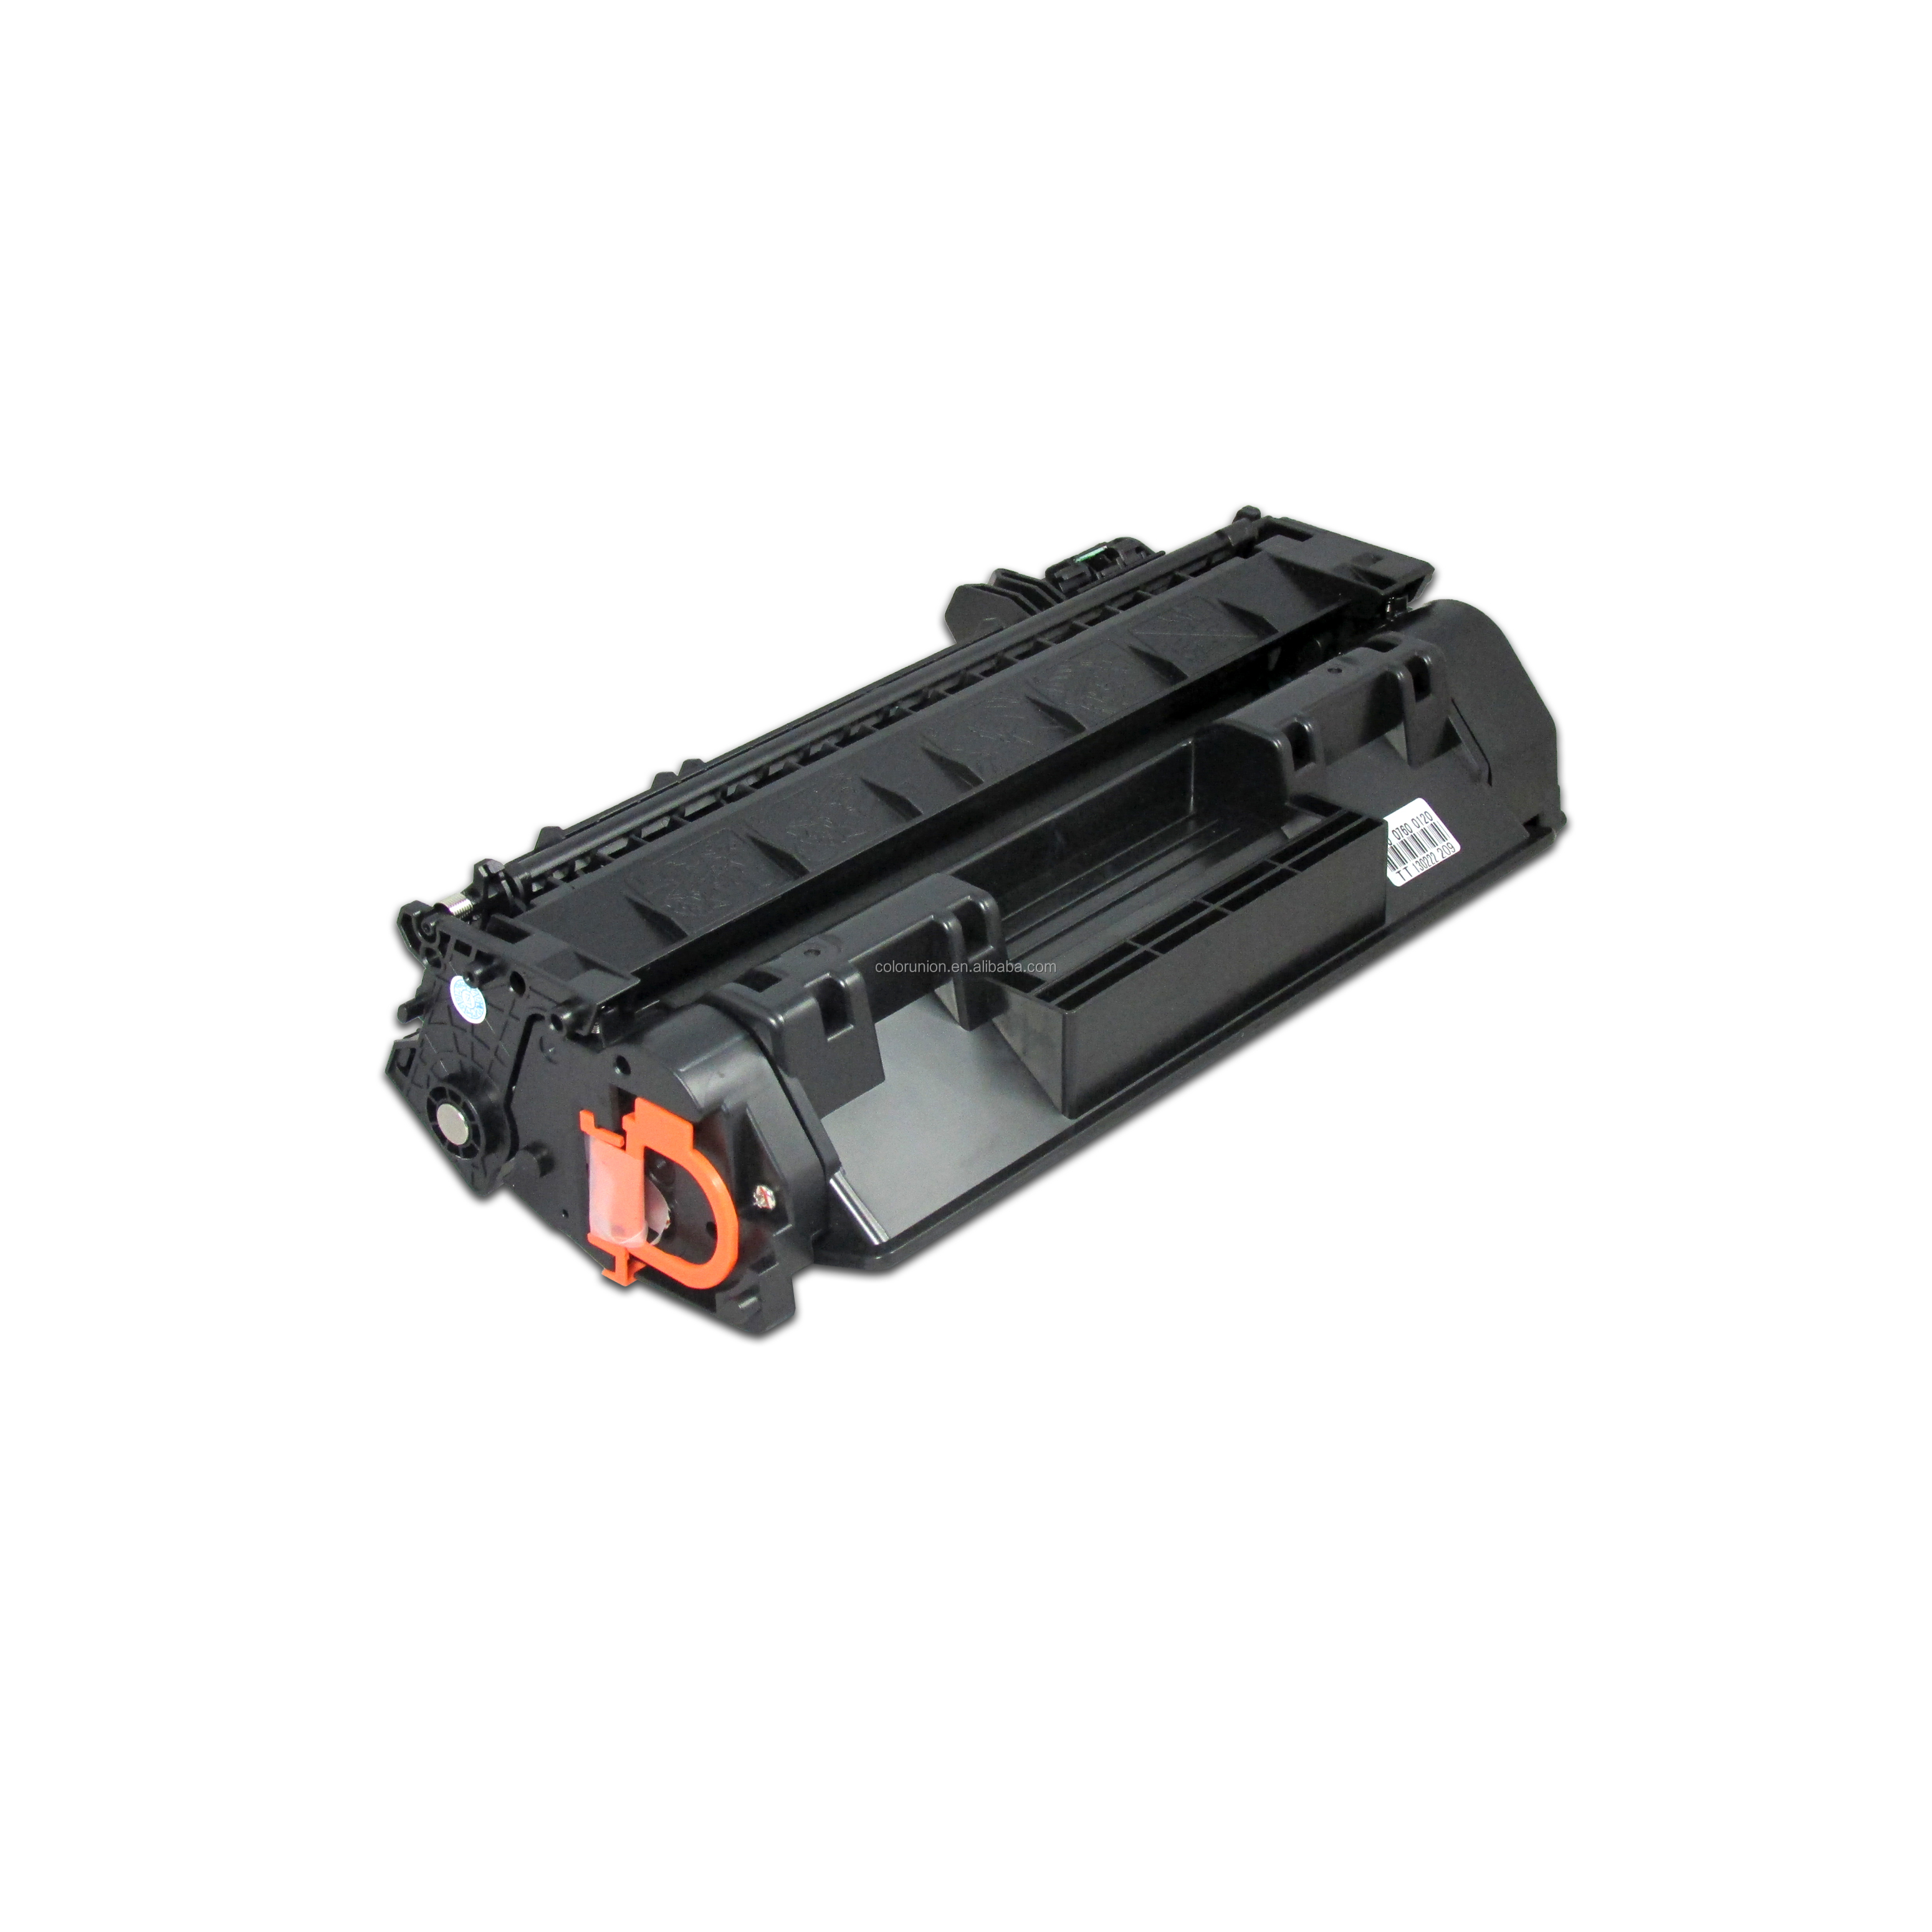 2020 Hot selling 80a toner cartridge chip toner cartridge for HP LaserJet P2035/P2035n/P2050/P2055d/P2055dn/P2055x